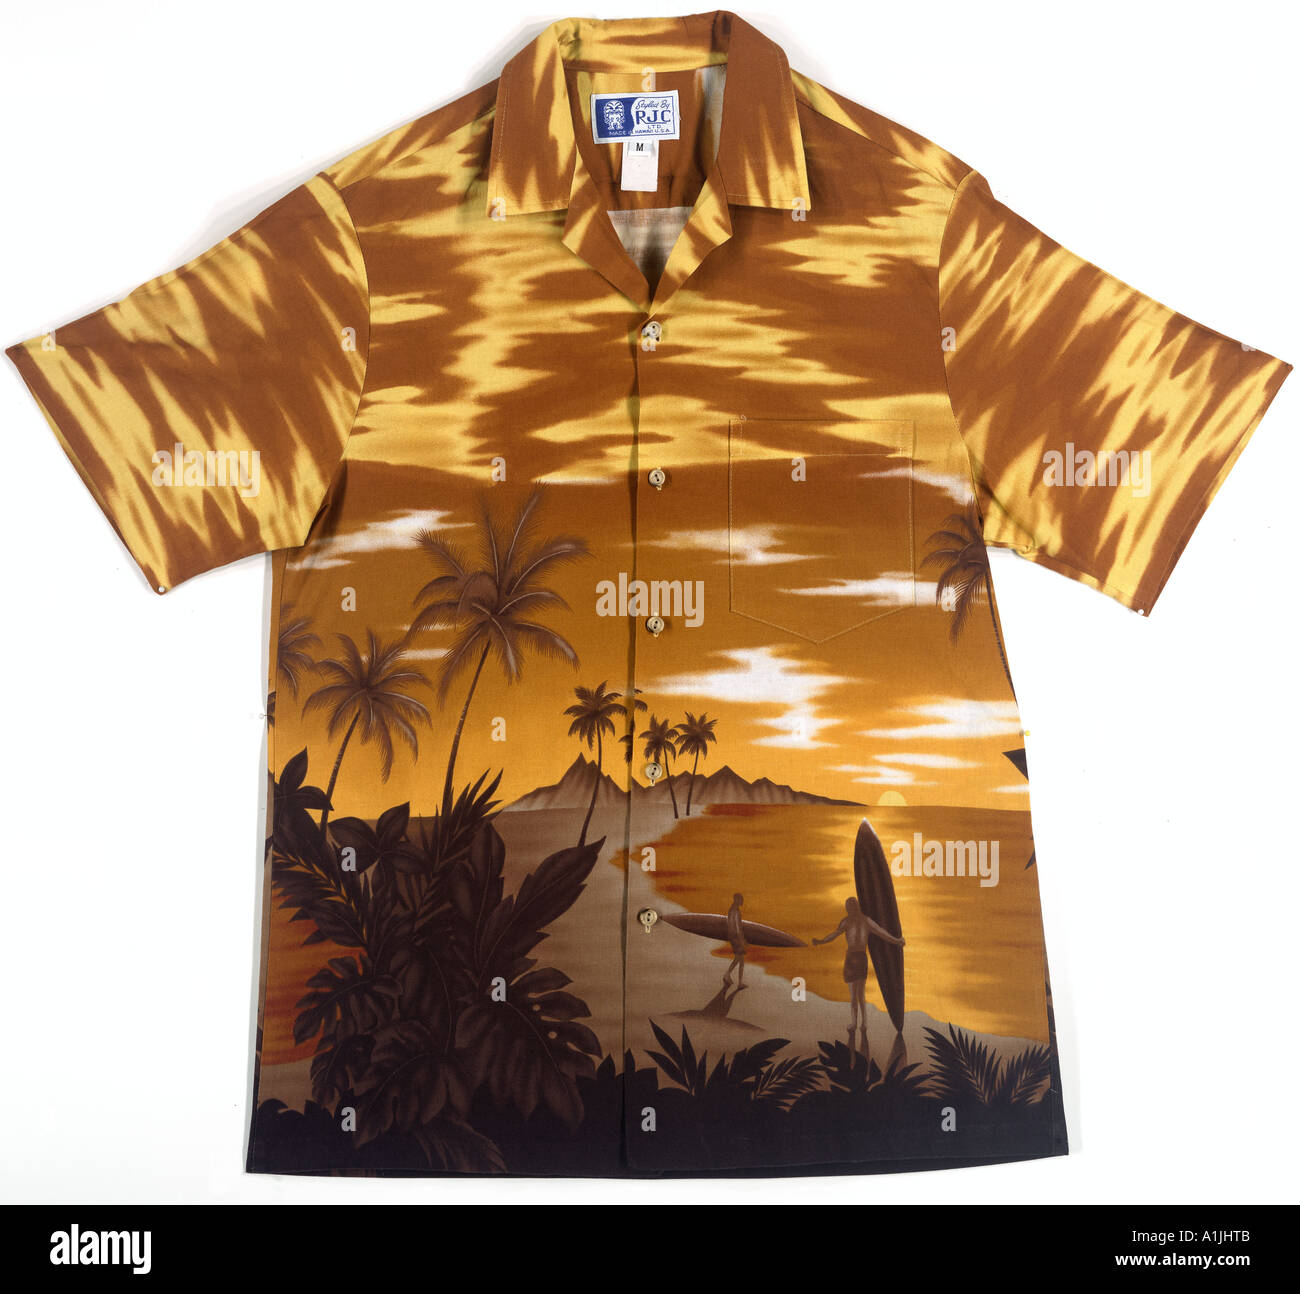 176c2385d8be Hawaiian Shirt Stock Photos   Hawaiian Shirt Stock Images - Alamy